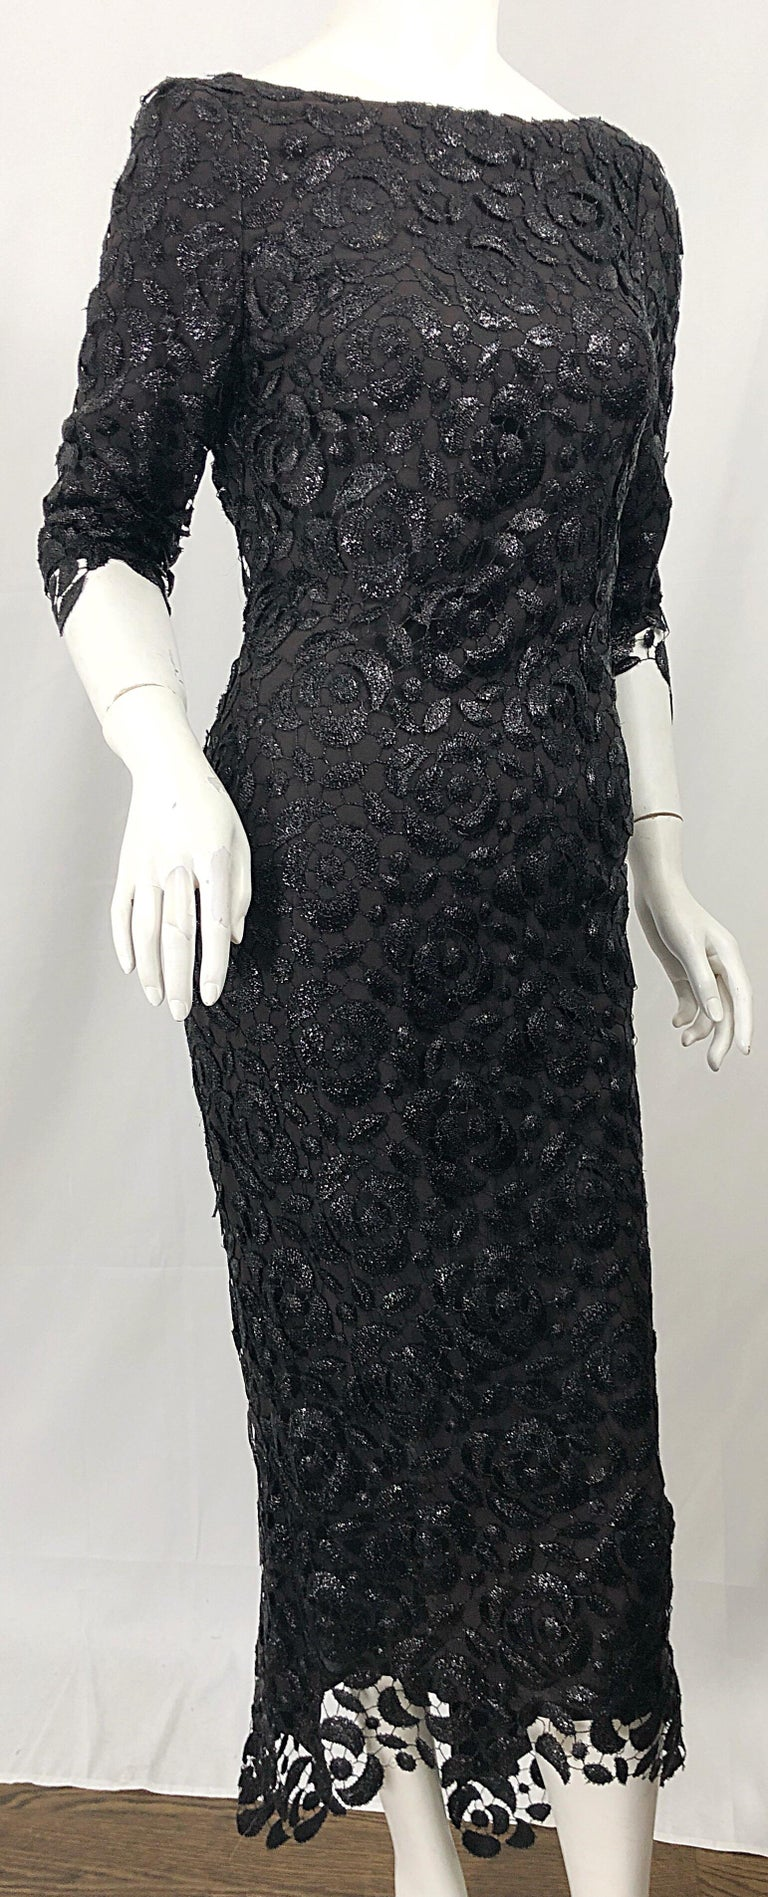 Stunning $10k Vintage Halston Black 3/4 Sleeves Silk Lace Crochet Sz 4 6 Dress For Sale 12